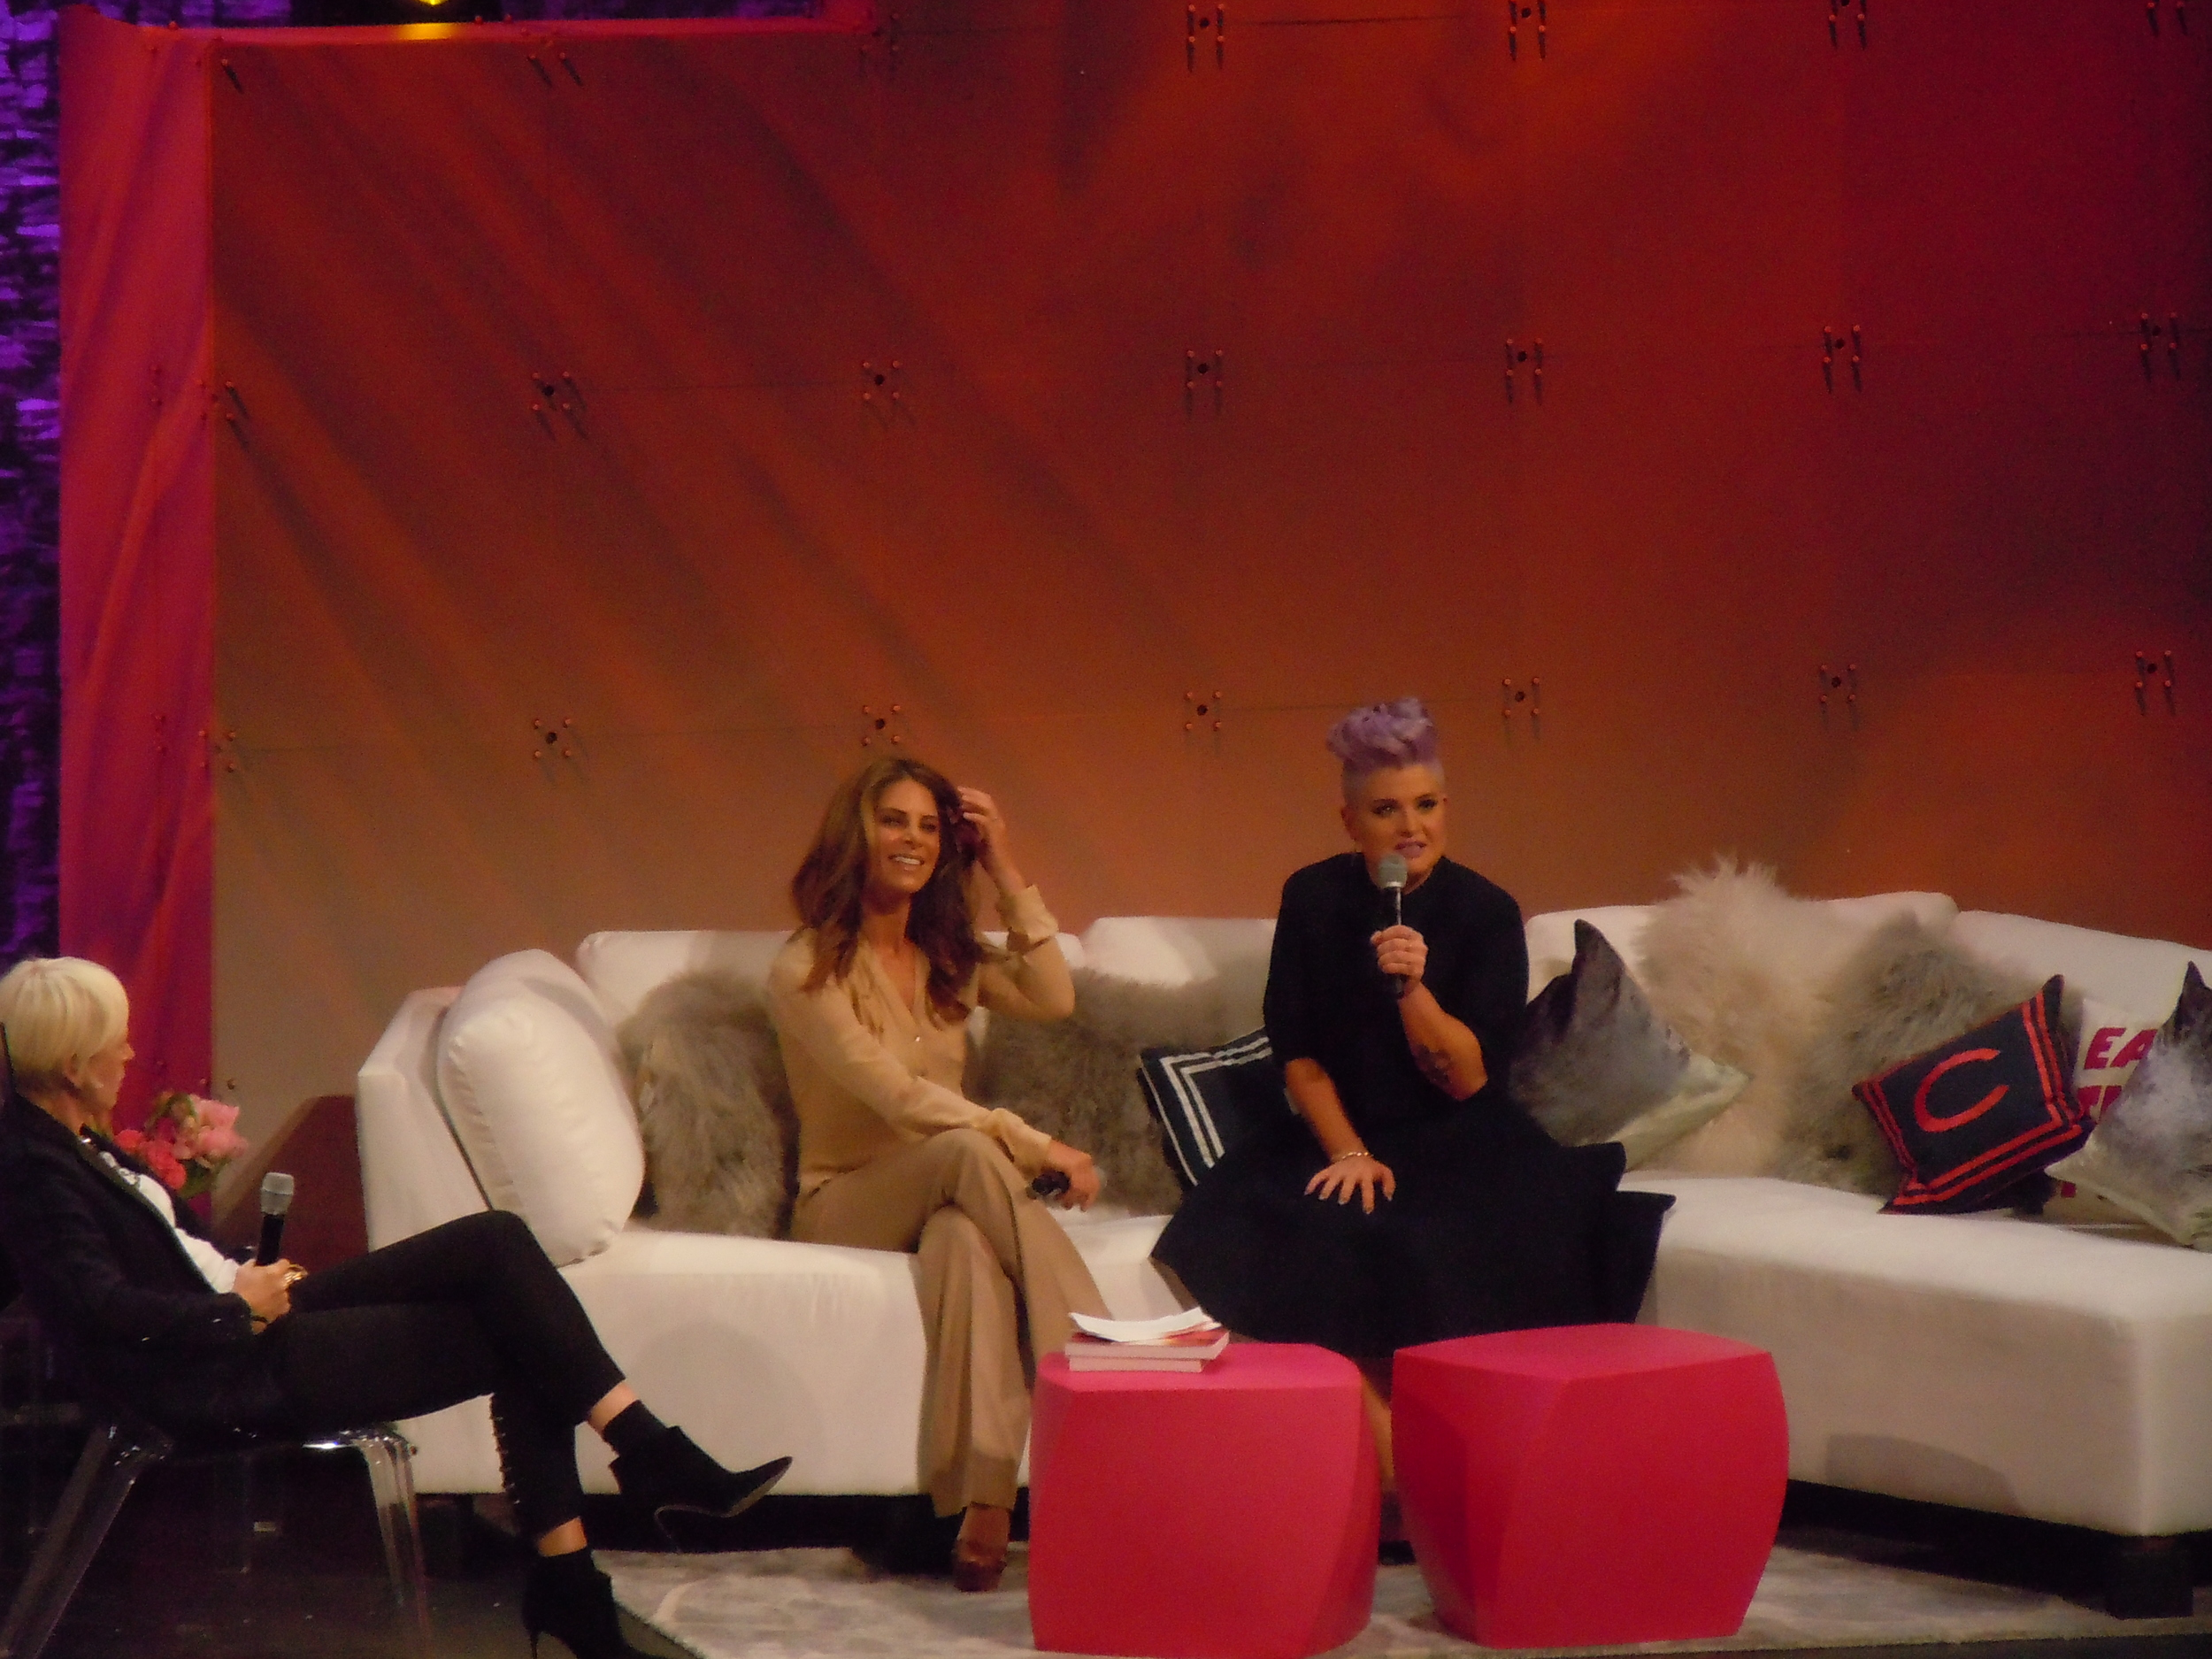 Jillian Michaels & Kelly Osbourne